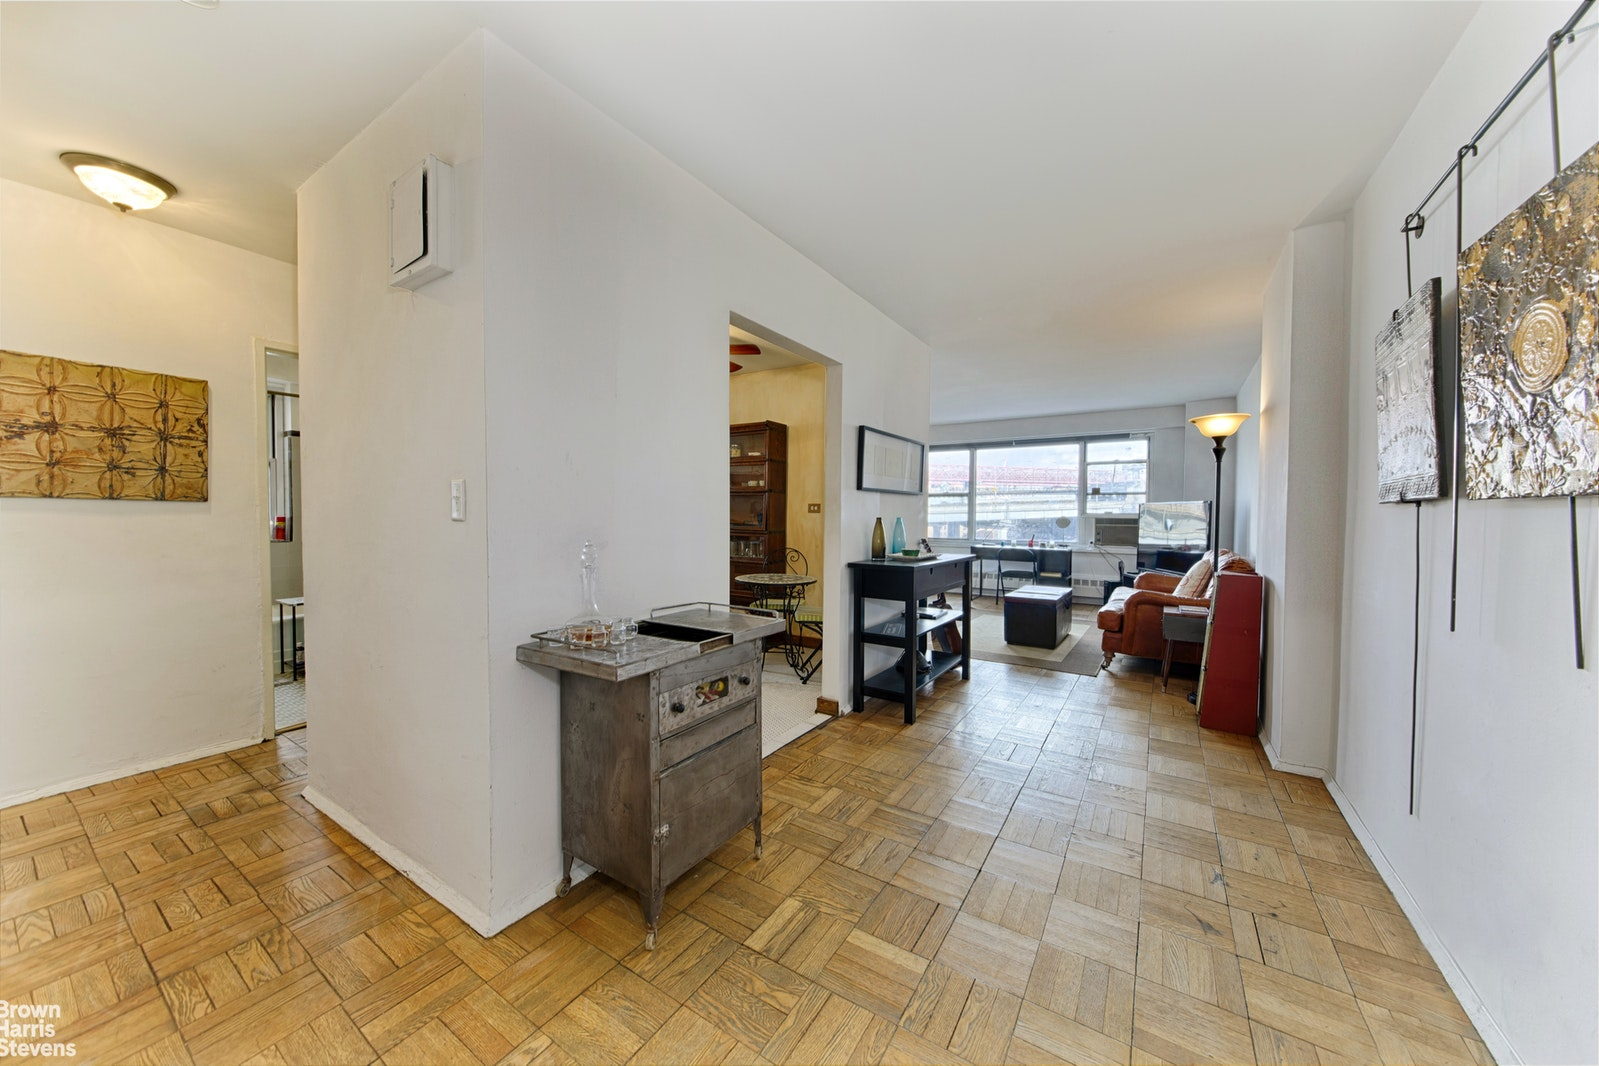 568 Grand Street, Lower East Side, NYC, 10002, Price Not Disclosed, Rented Property, ID# 14198951, Halstead